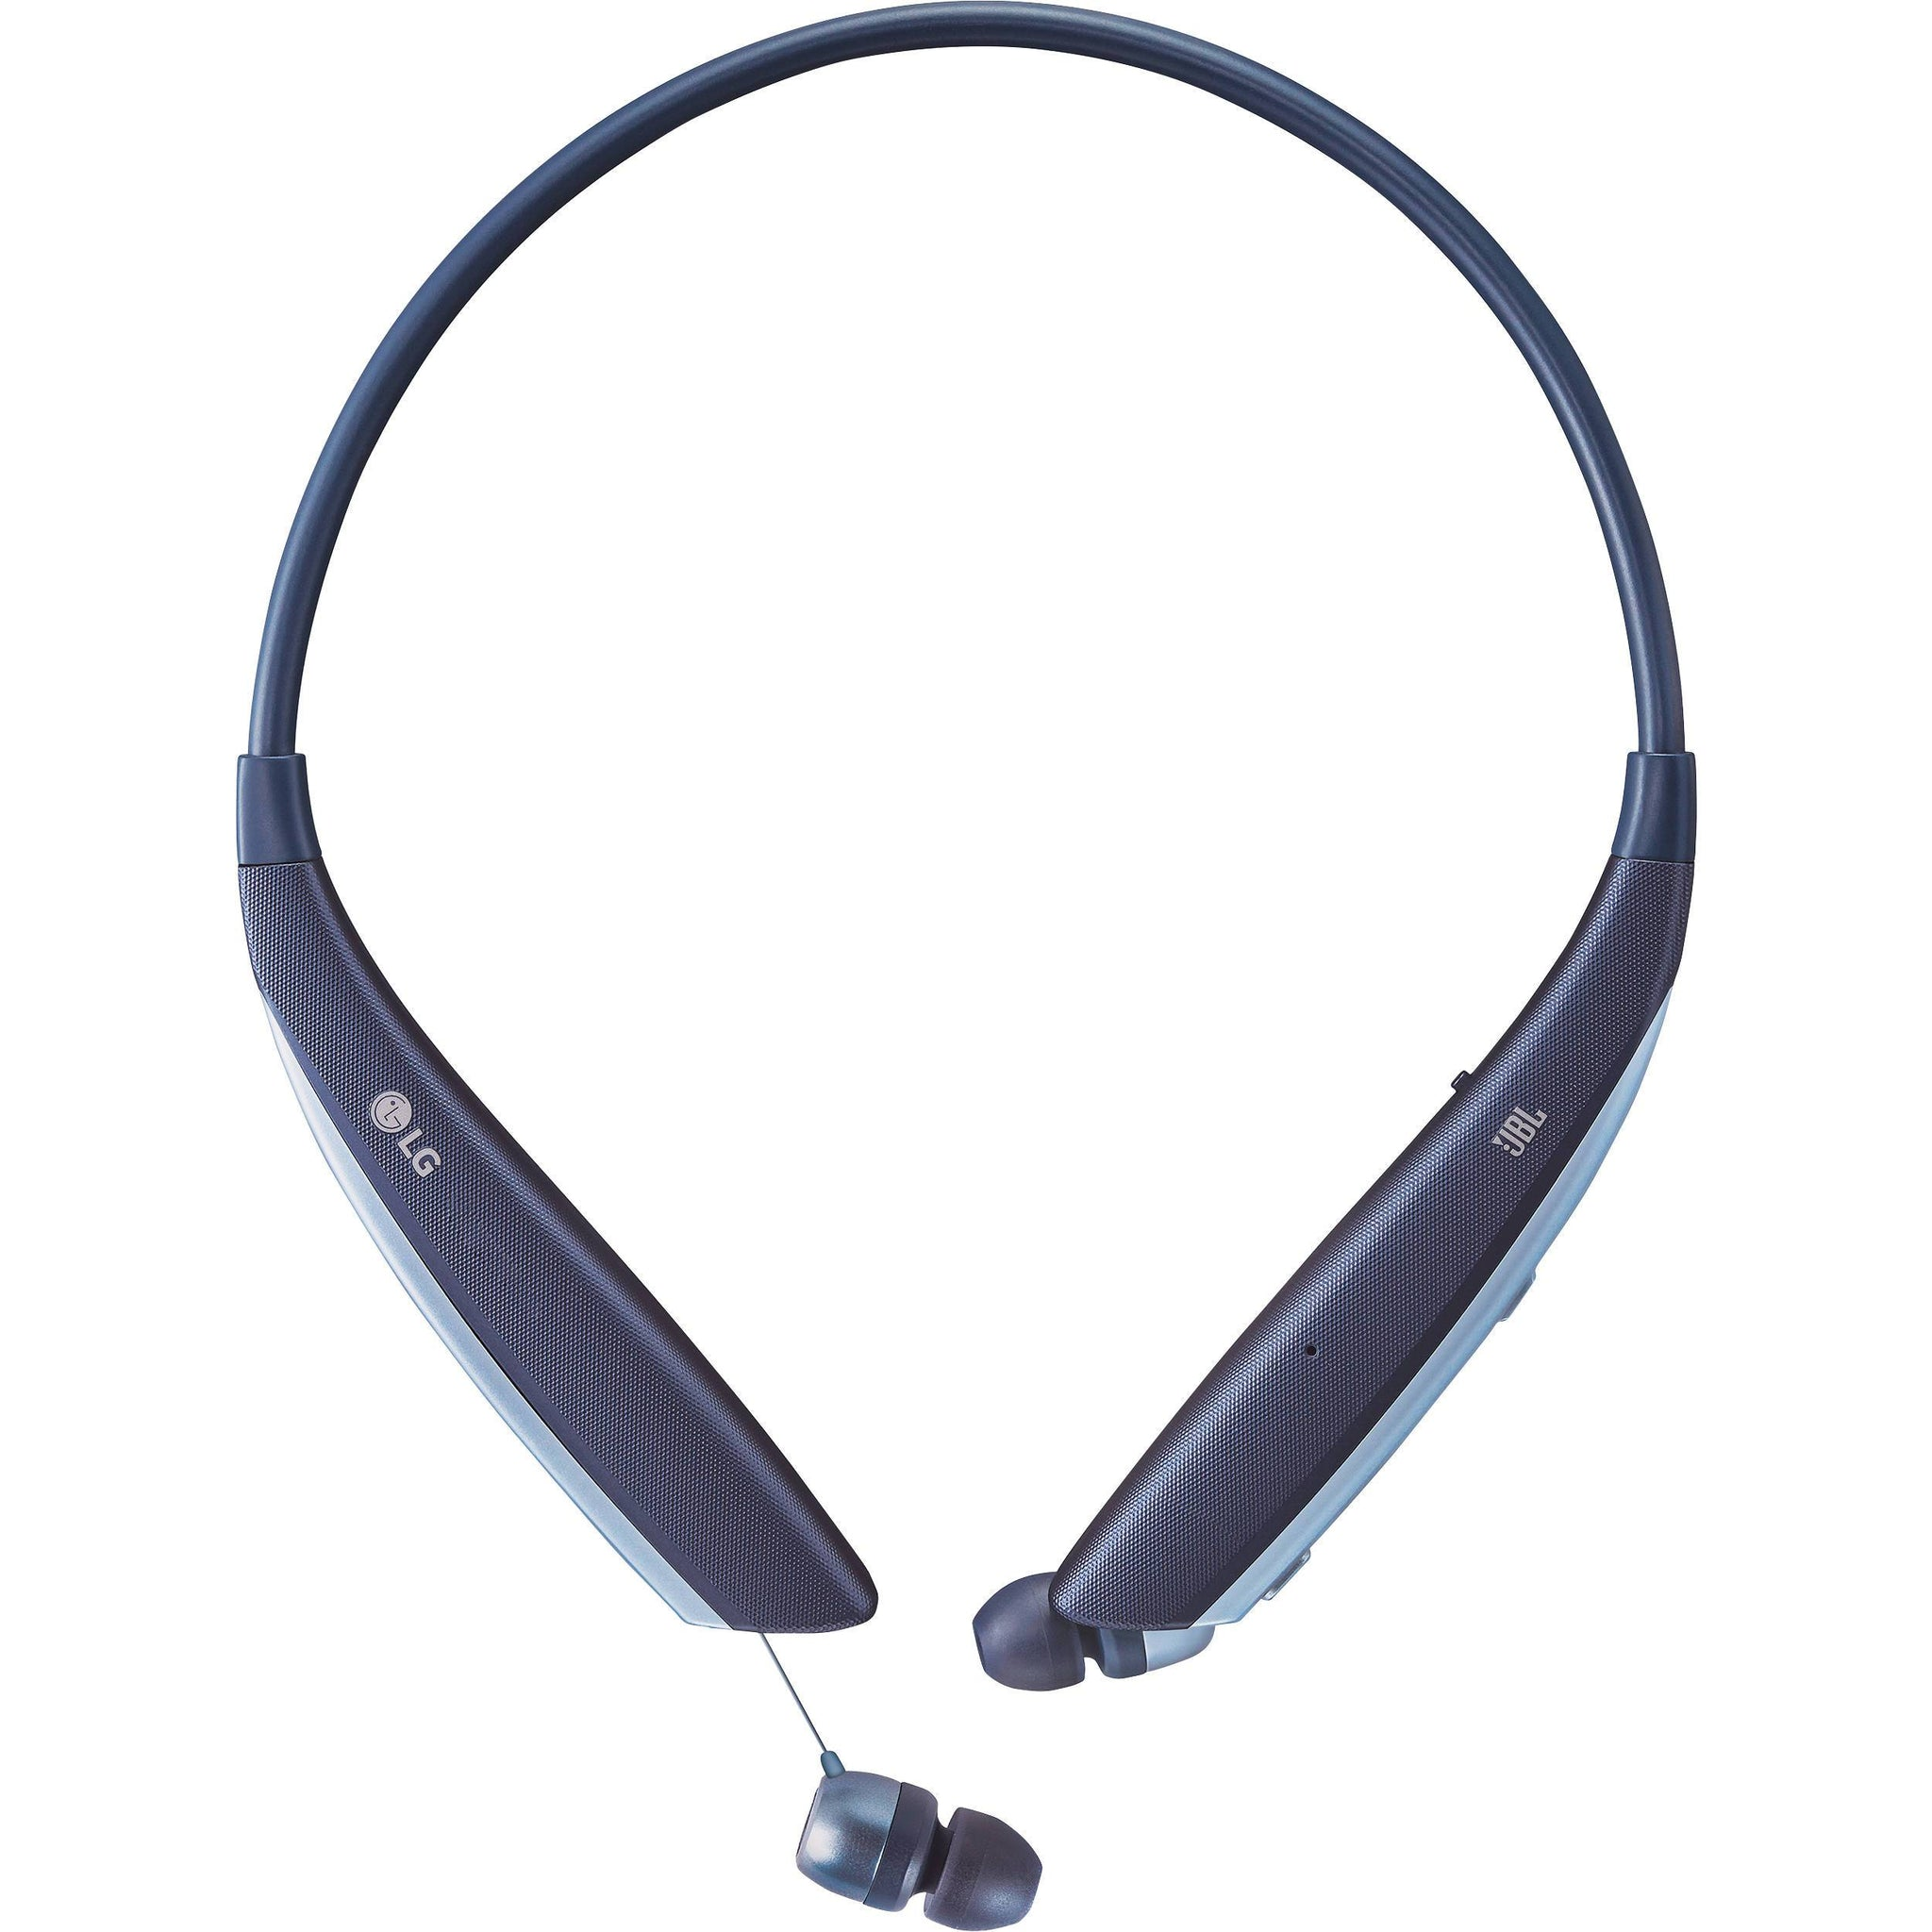 LG HBS-835 TONE Ultra Wireless In-Ear Headphones (Blue)